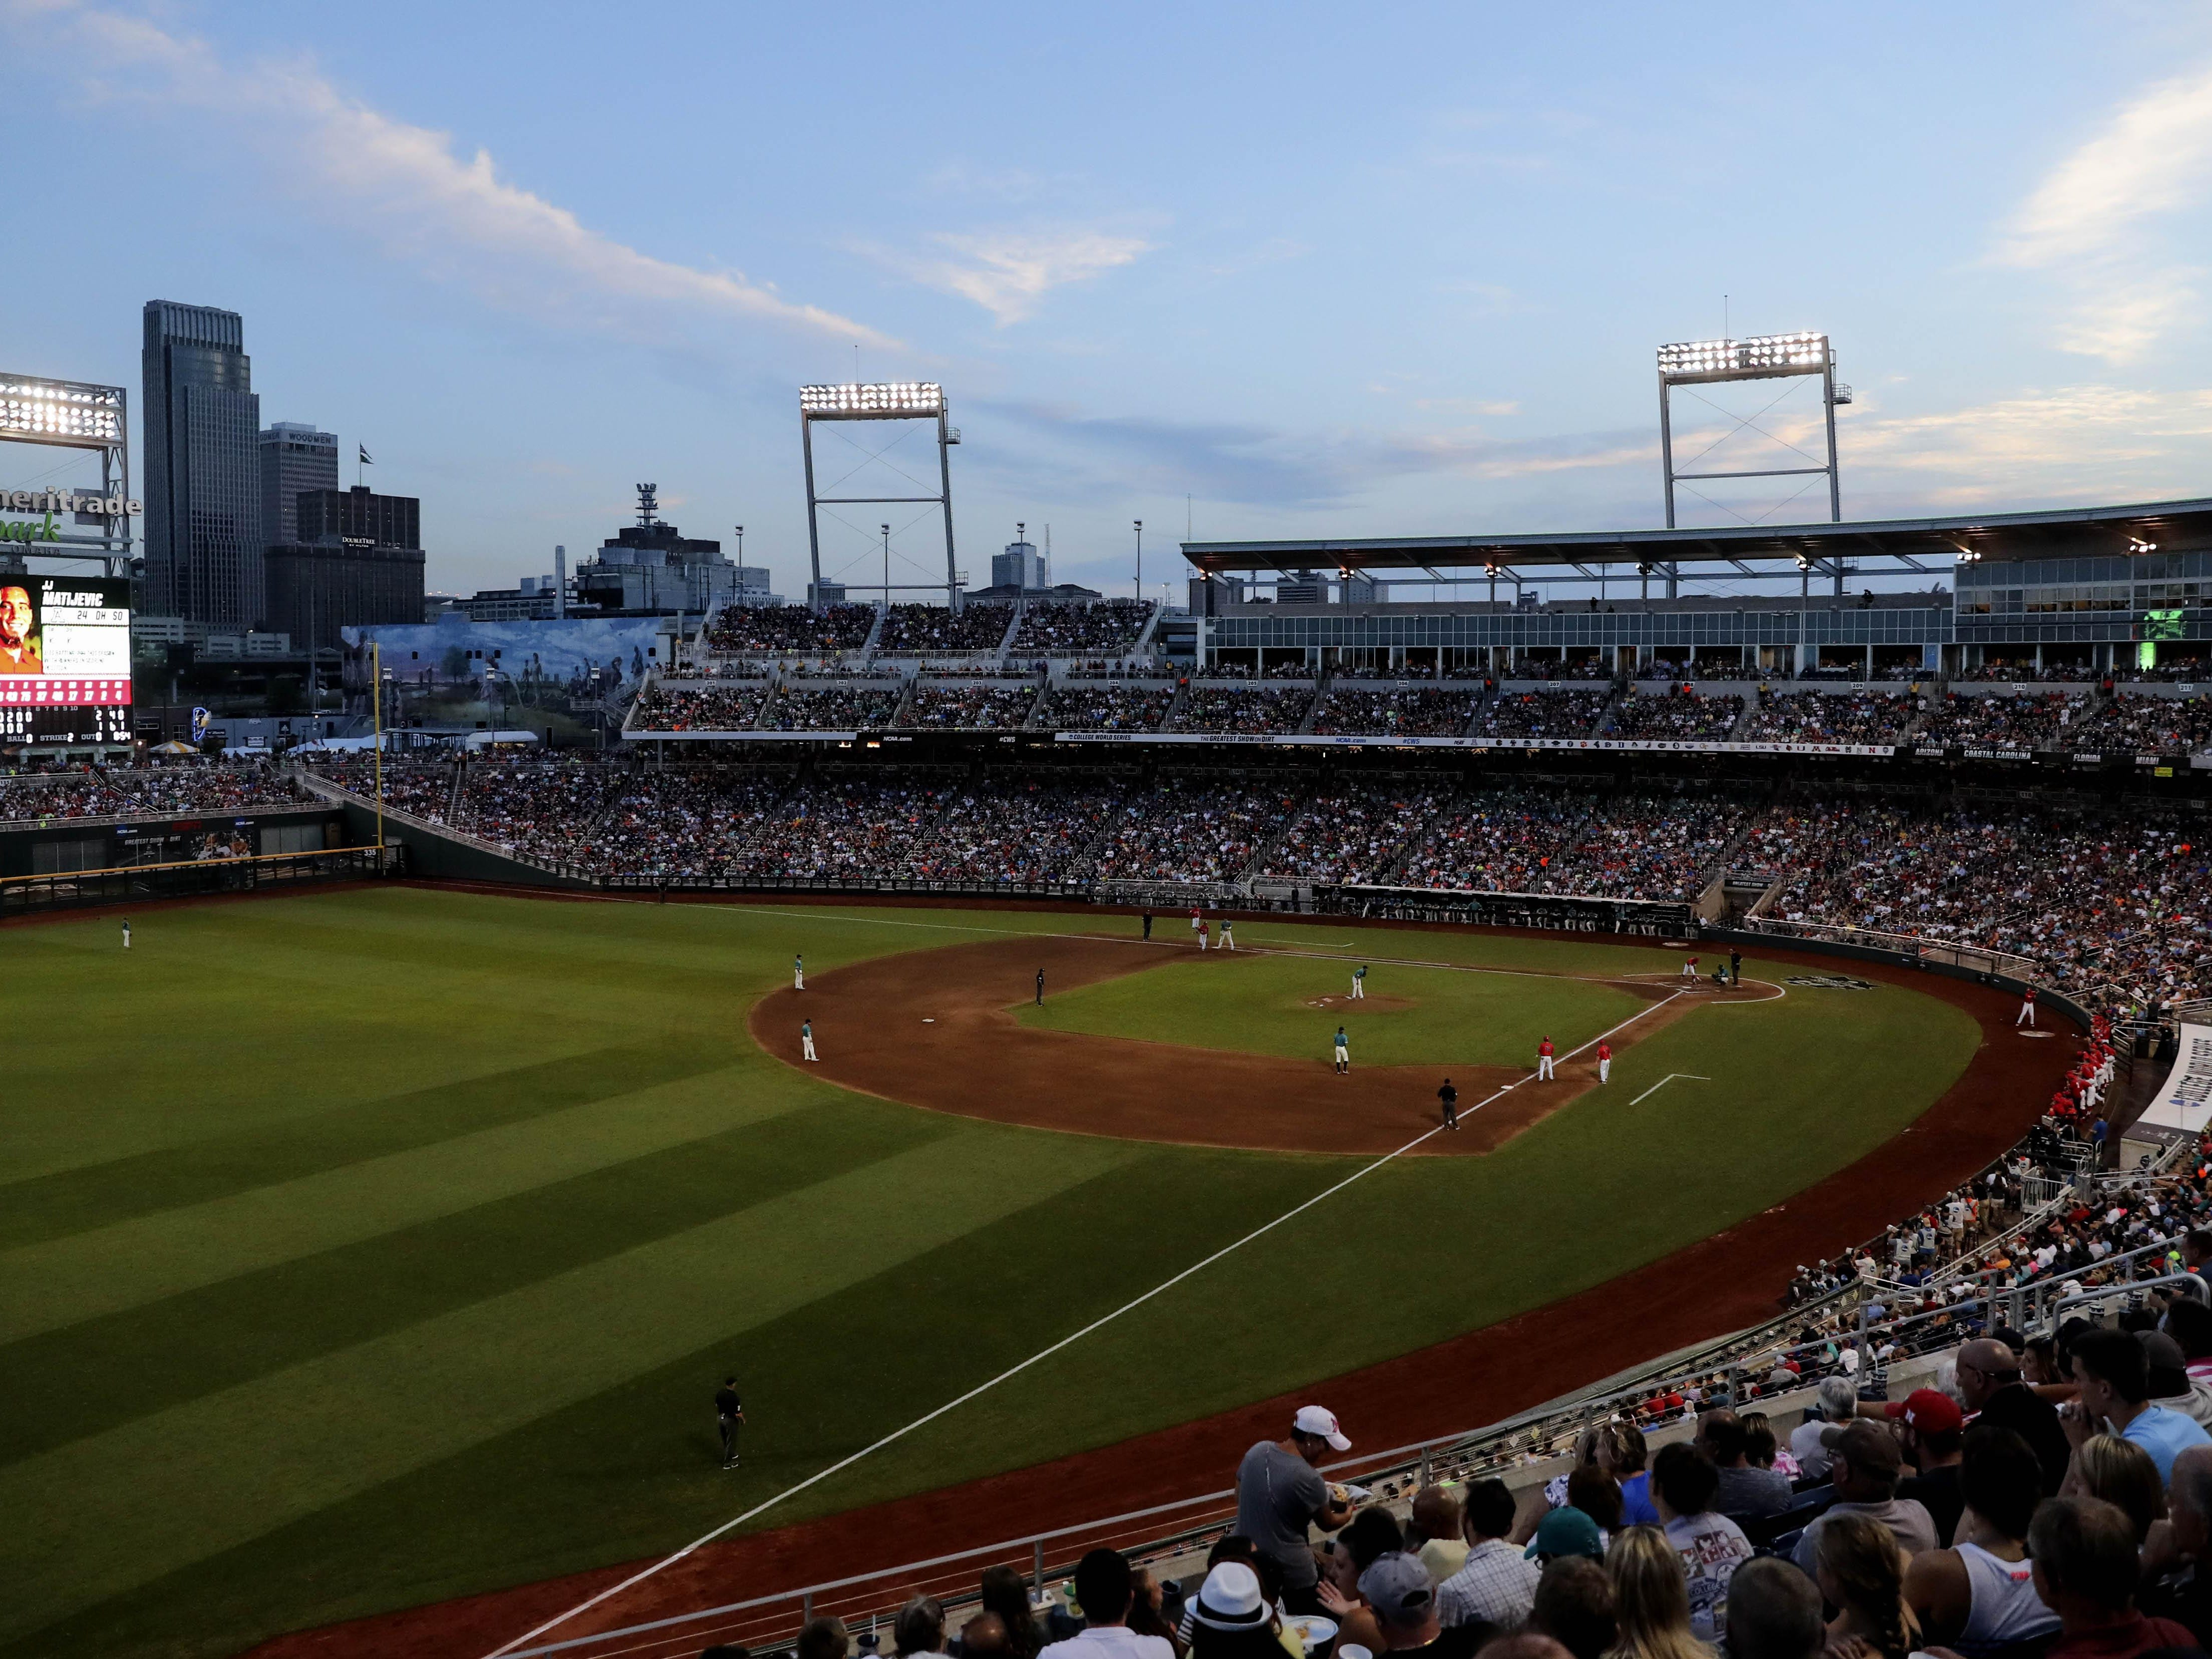 General view of the game between the Arizona Wildcats and Coastal Carolina Chanticleers in game two of the College World Series championship series at TD Ameritrade Park in 2016.